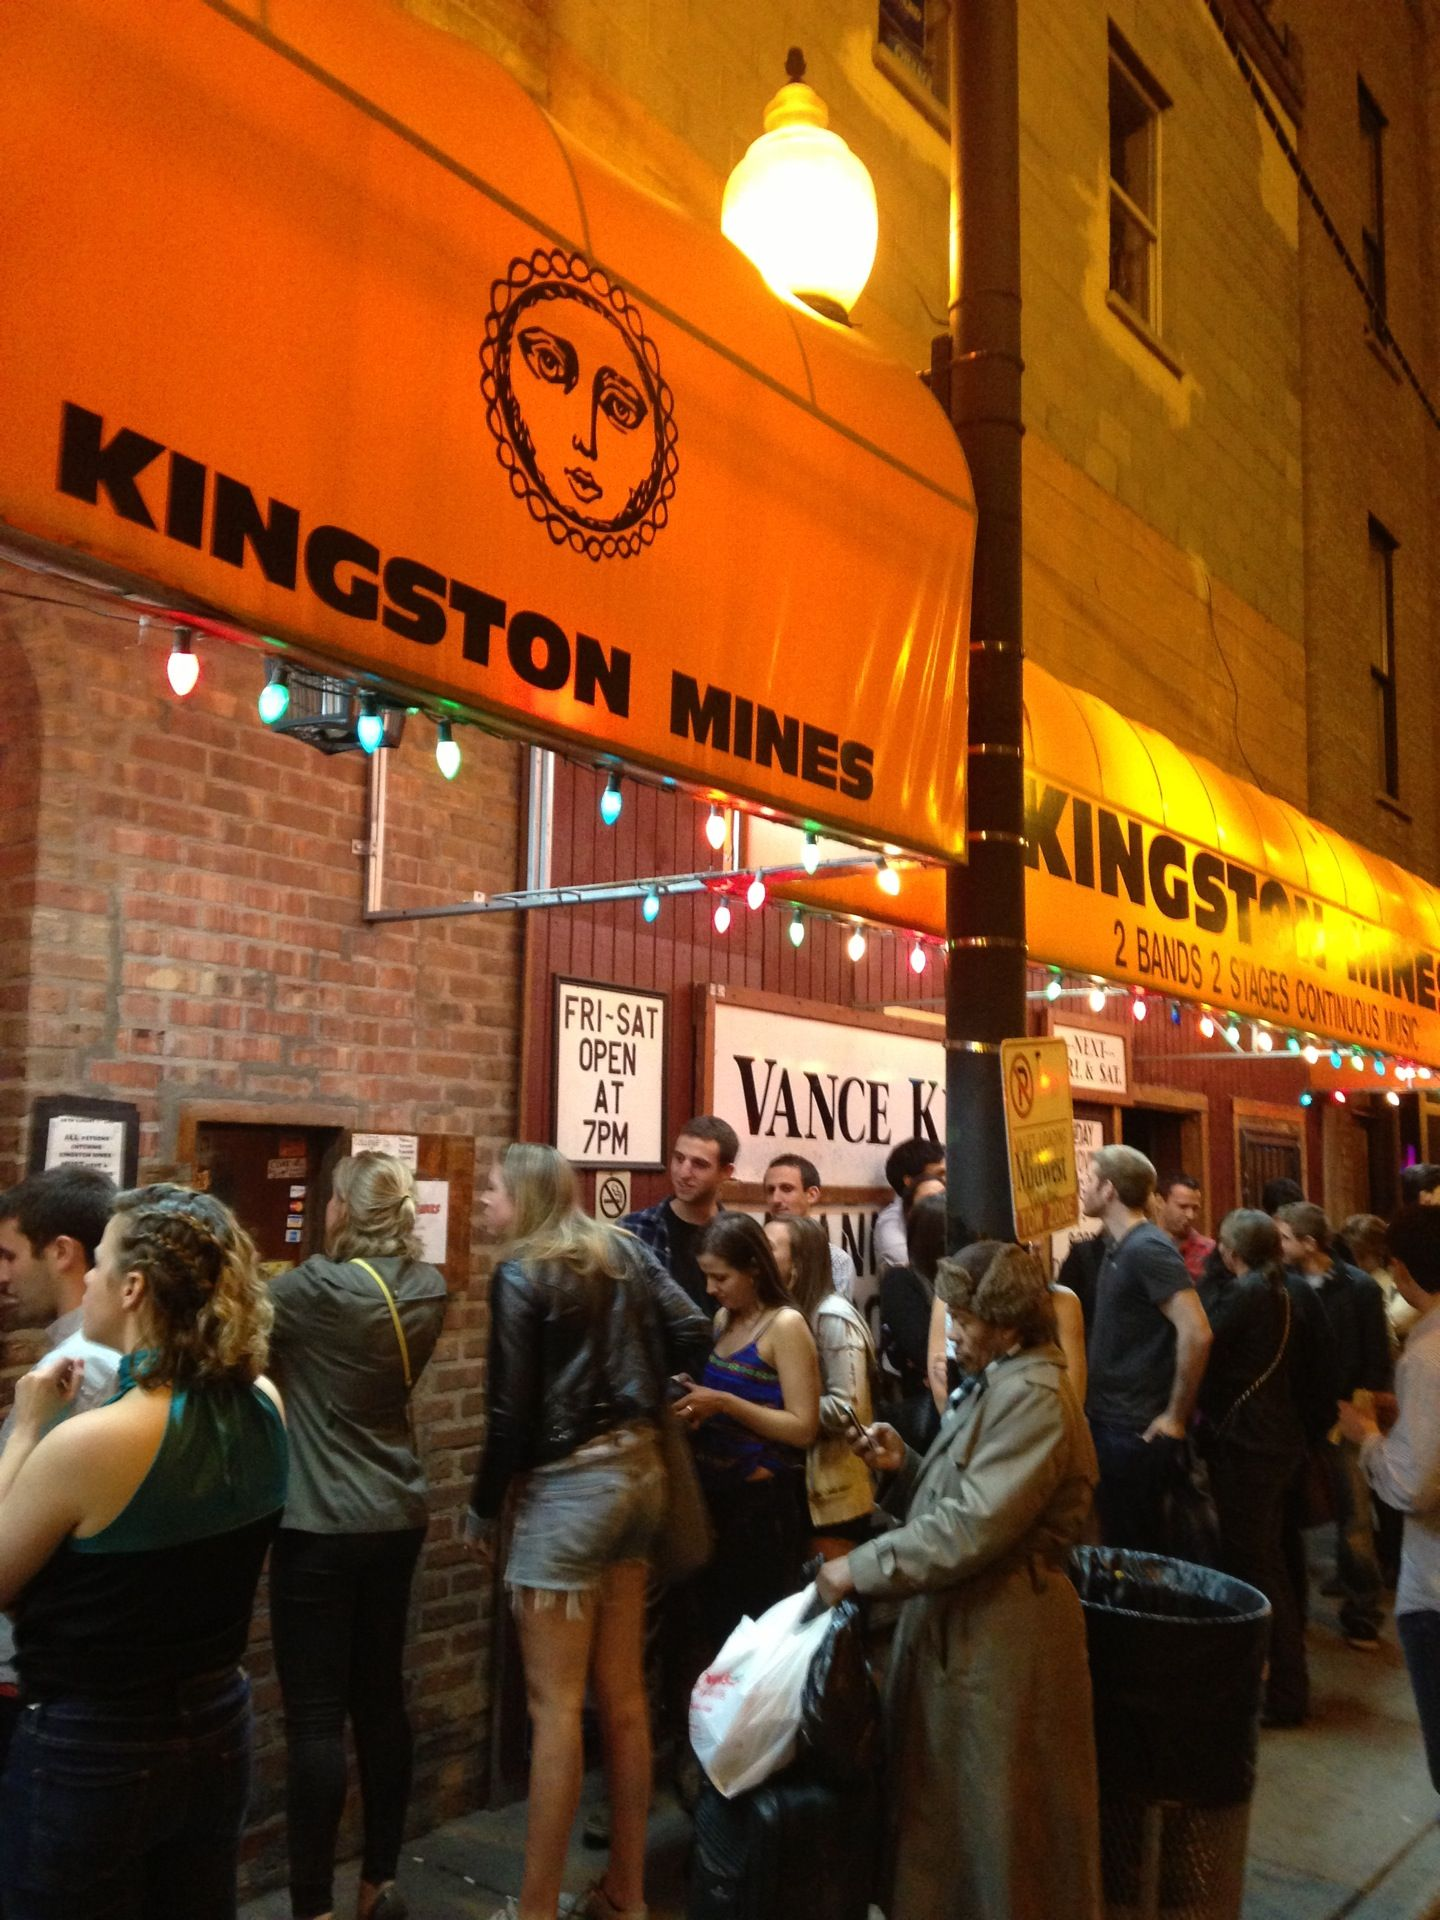 kingston mines dating Meet single gay men in norris are you single in norris and looking for your true love or would you just like someone new to go to a craft beer pub with tomorrow night.